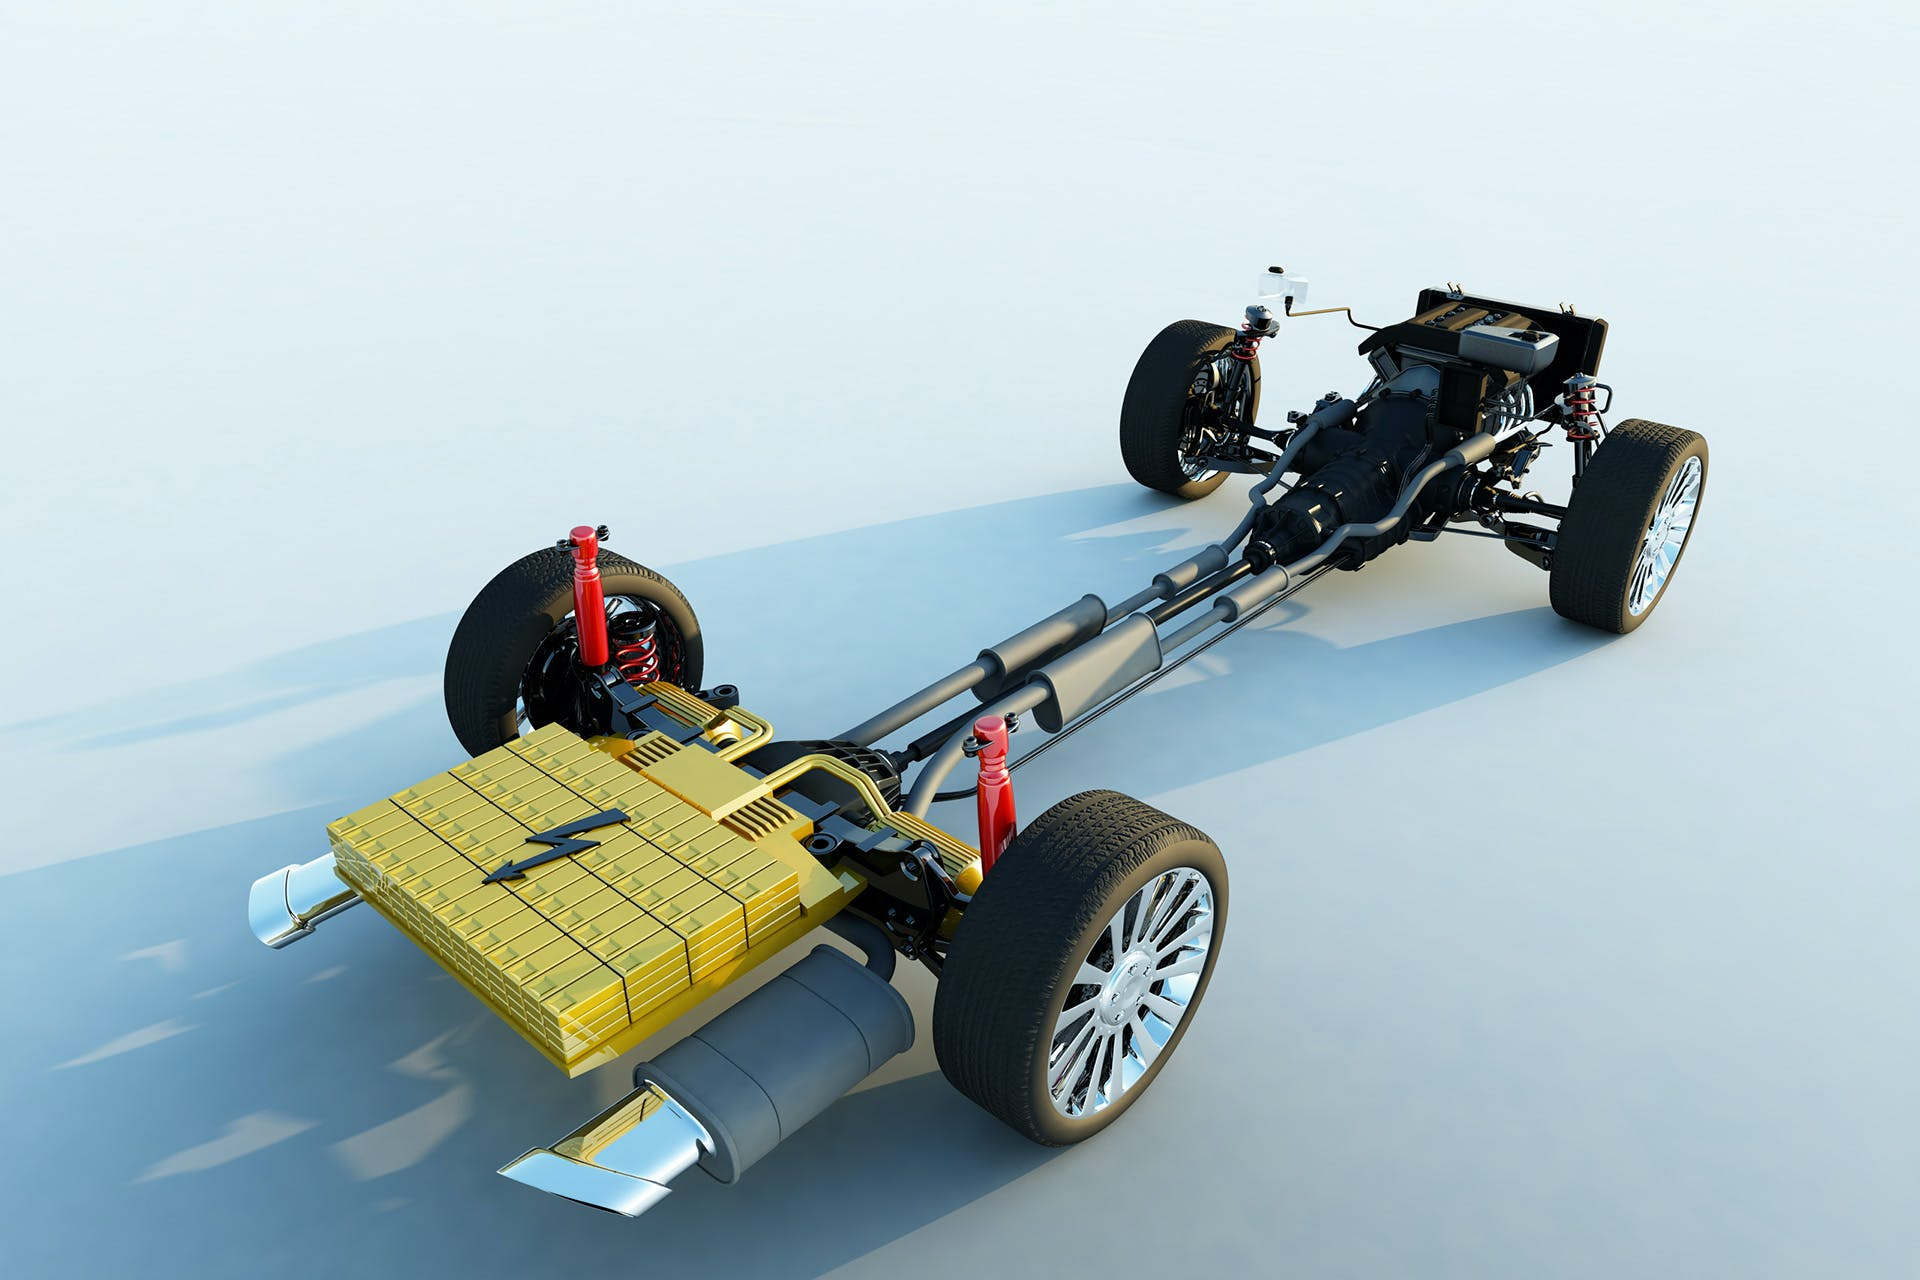 Chassis of a car with tyres and electric drive